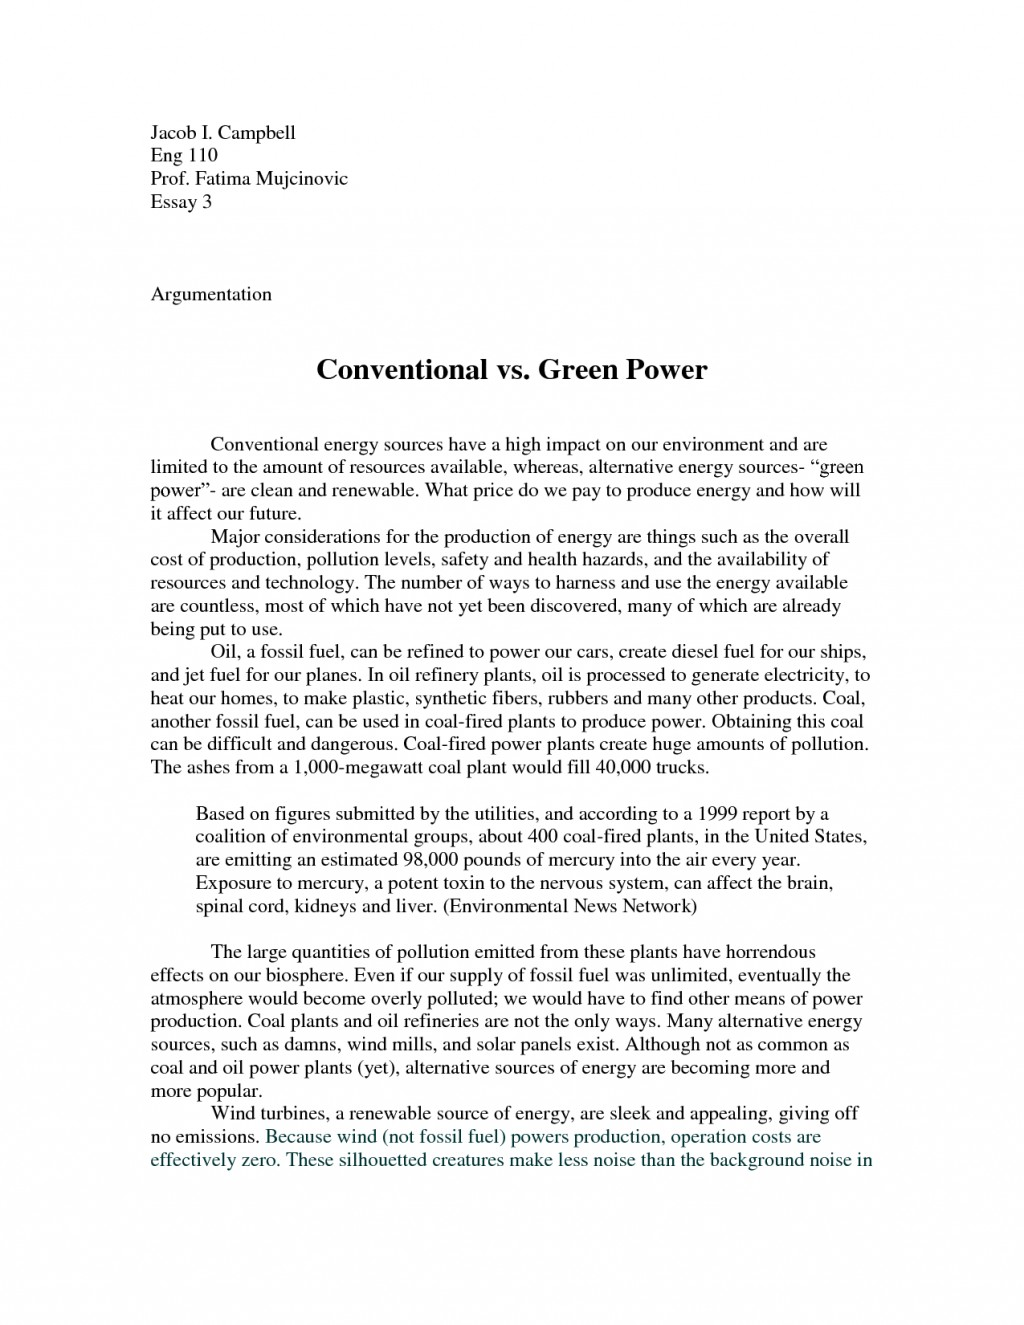 001 Green Energy Essay Example Essays On Power Macbeth Themes The Of Writing Fluency Goal For An Portfolio With Formidable In Tamil Save Use Large